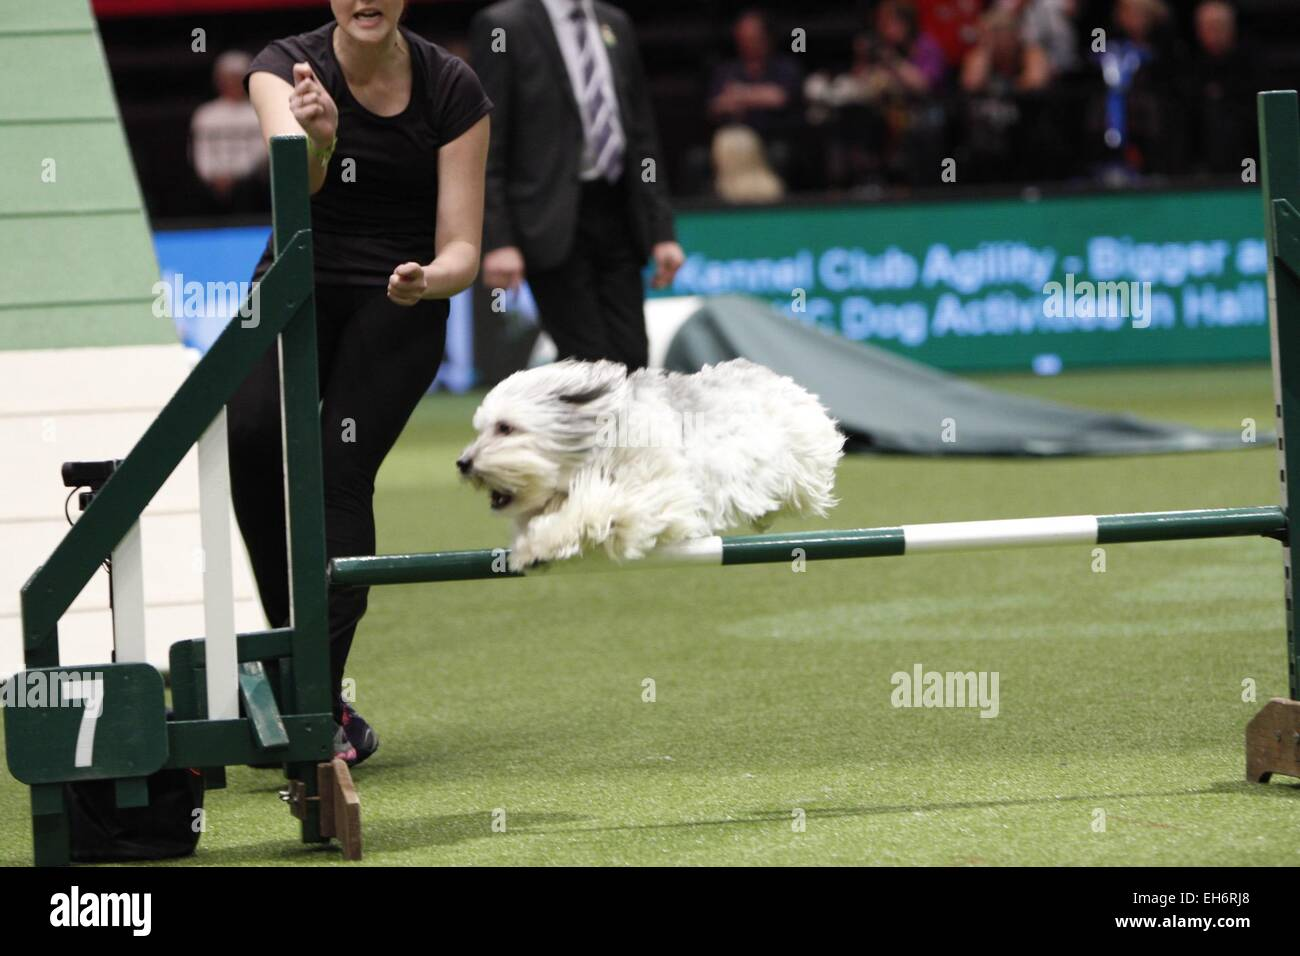 Birmingham, UK. 8th March, 2015. Pudsey, winner of Britains Got Talent taking part in the Agility final at Crufts - Stock Image